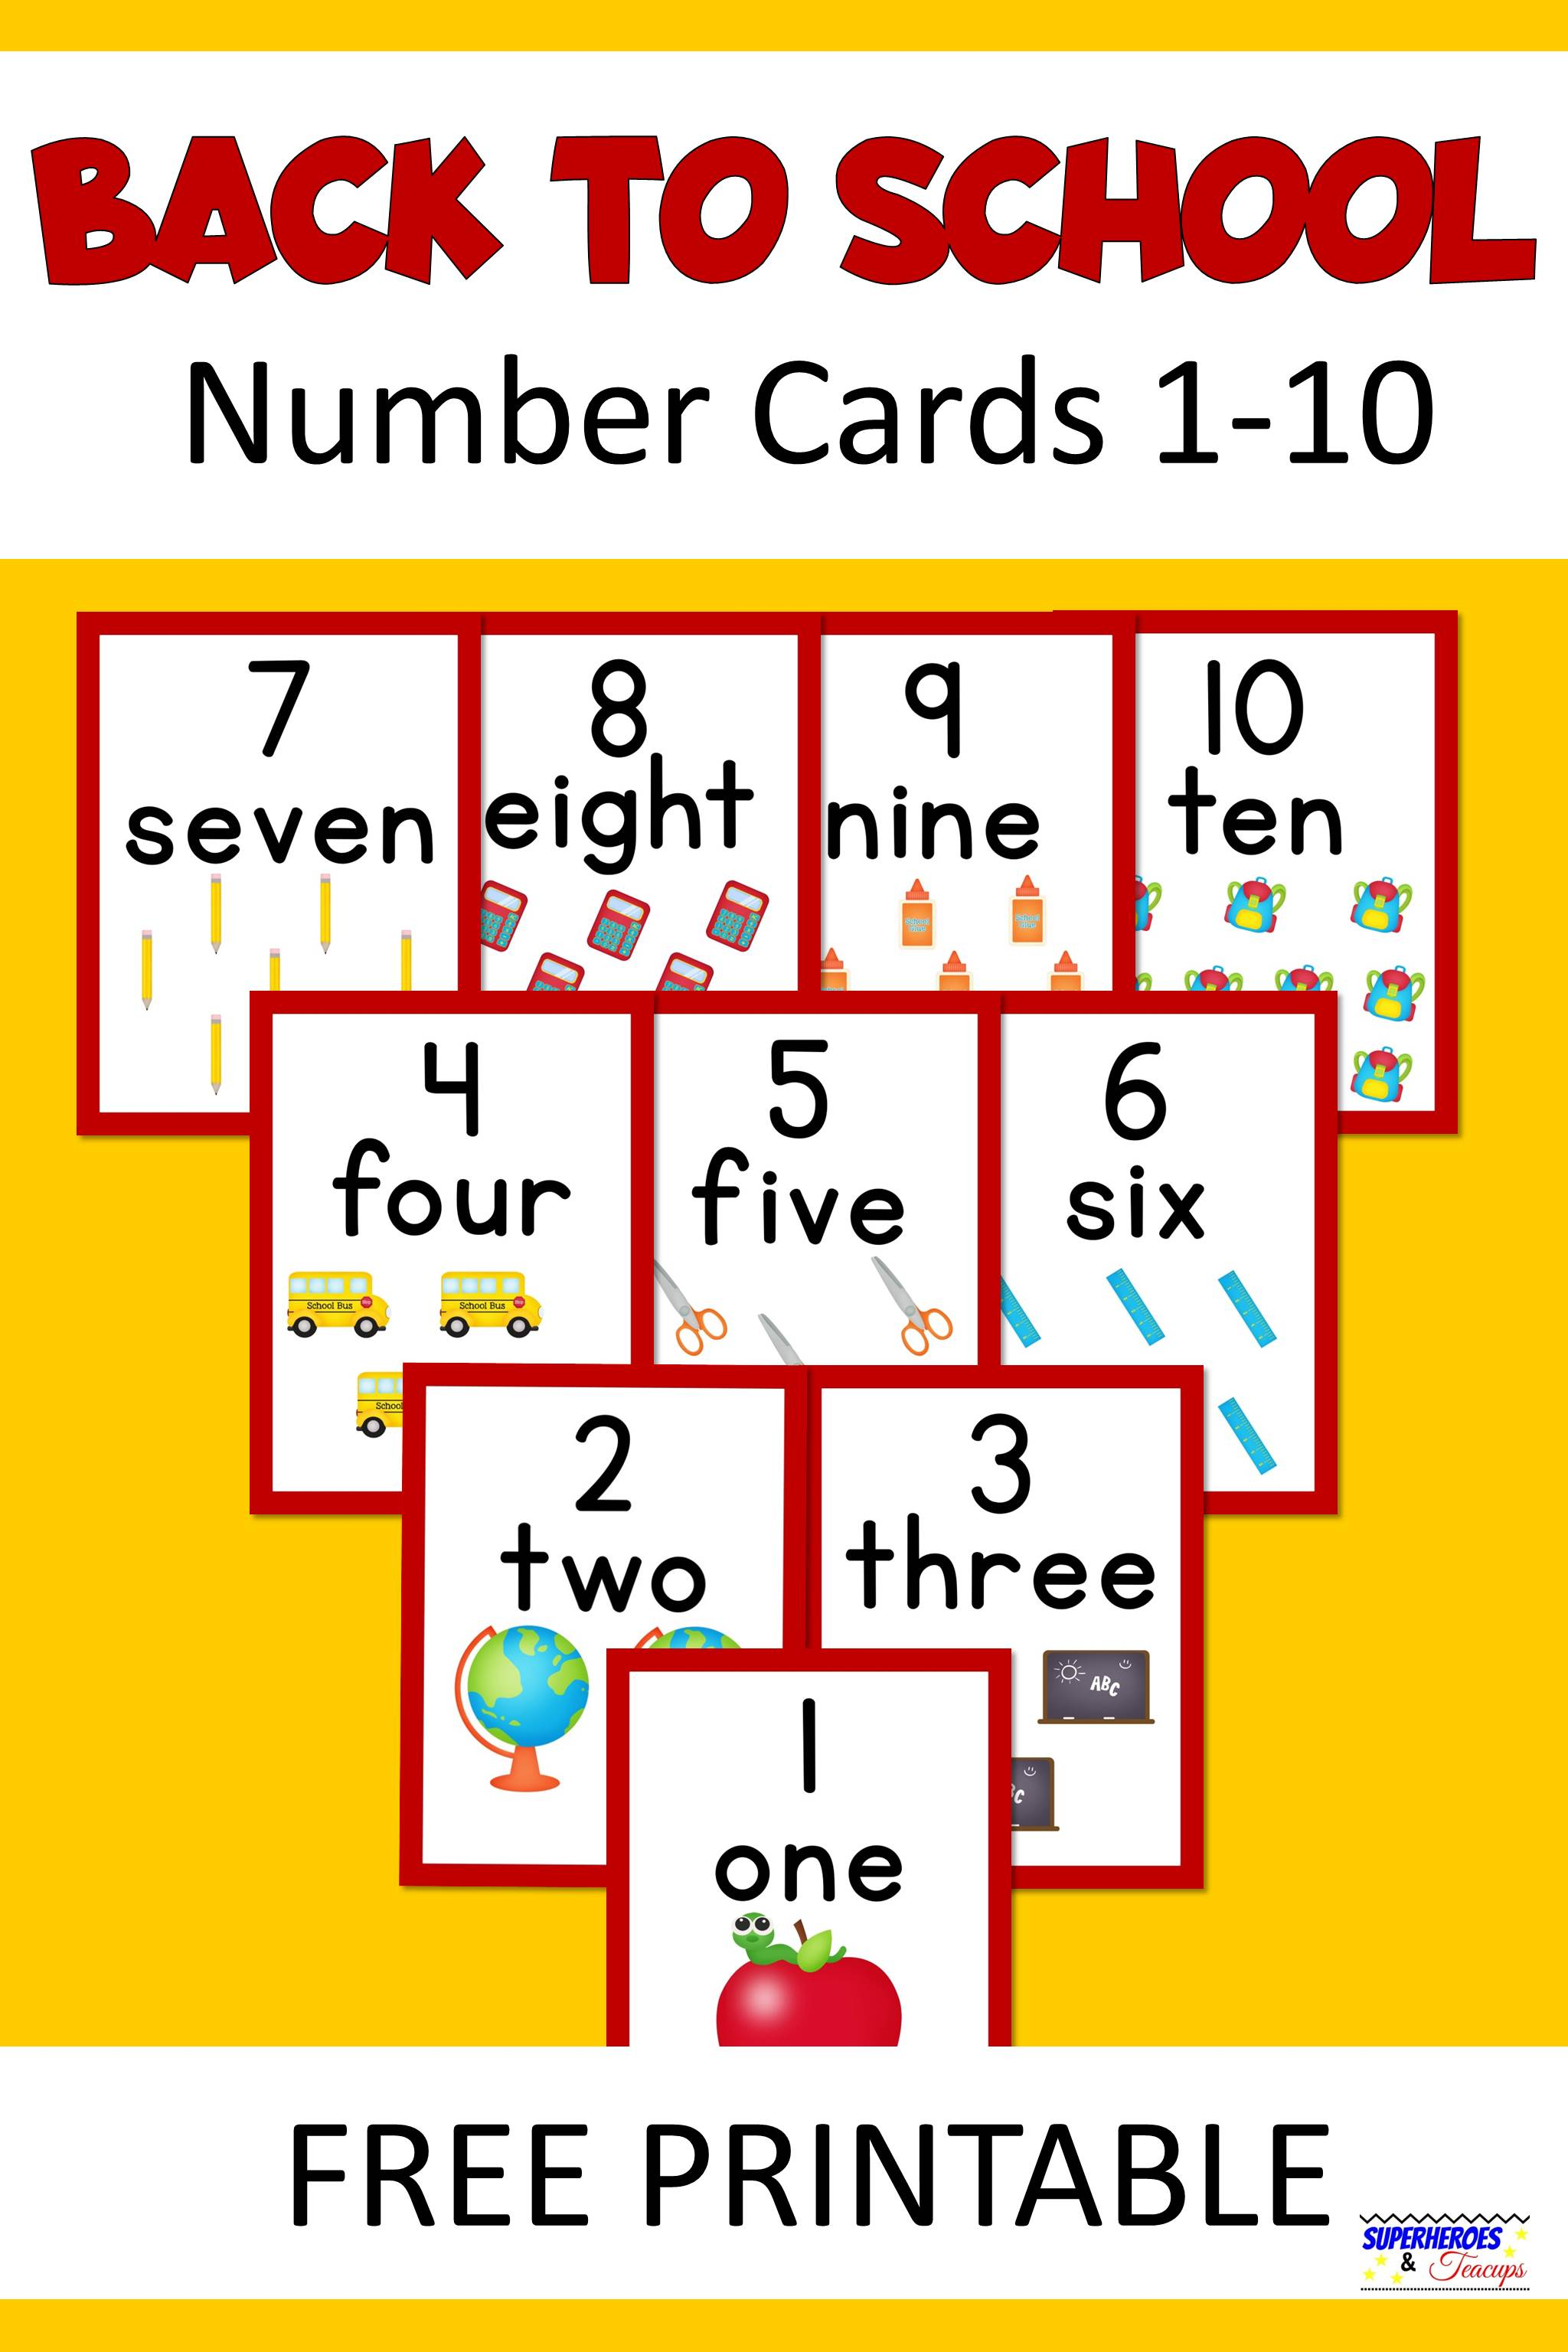 Back to School Number Cards Free Printable